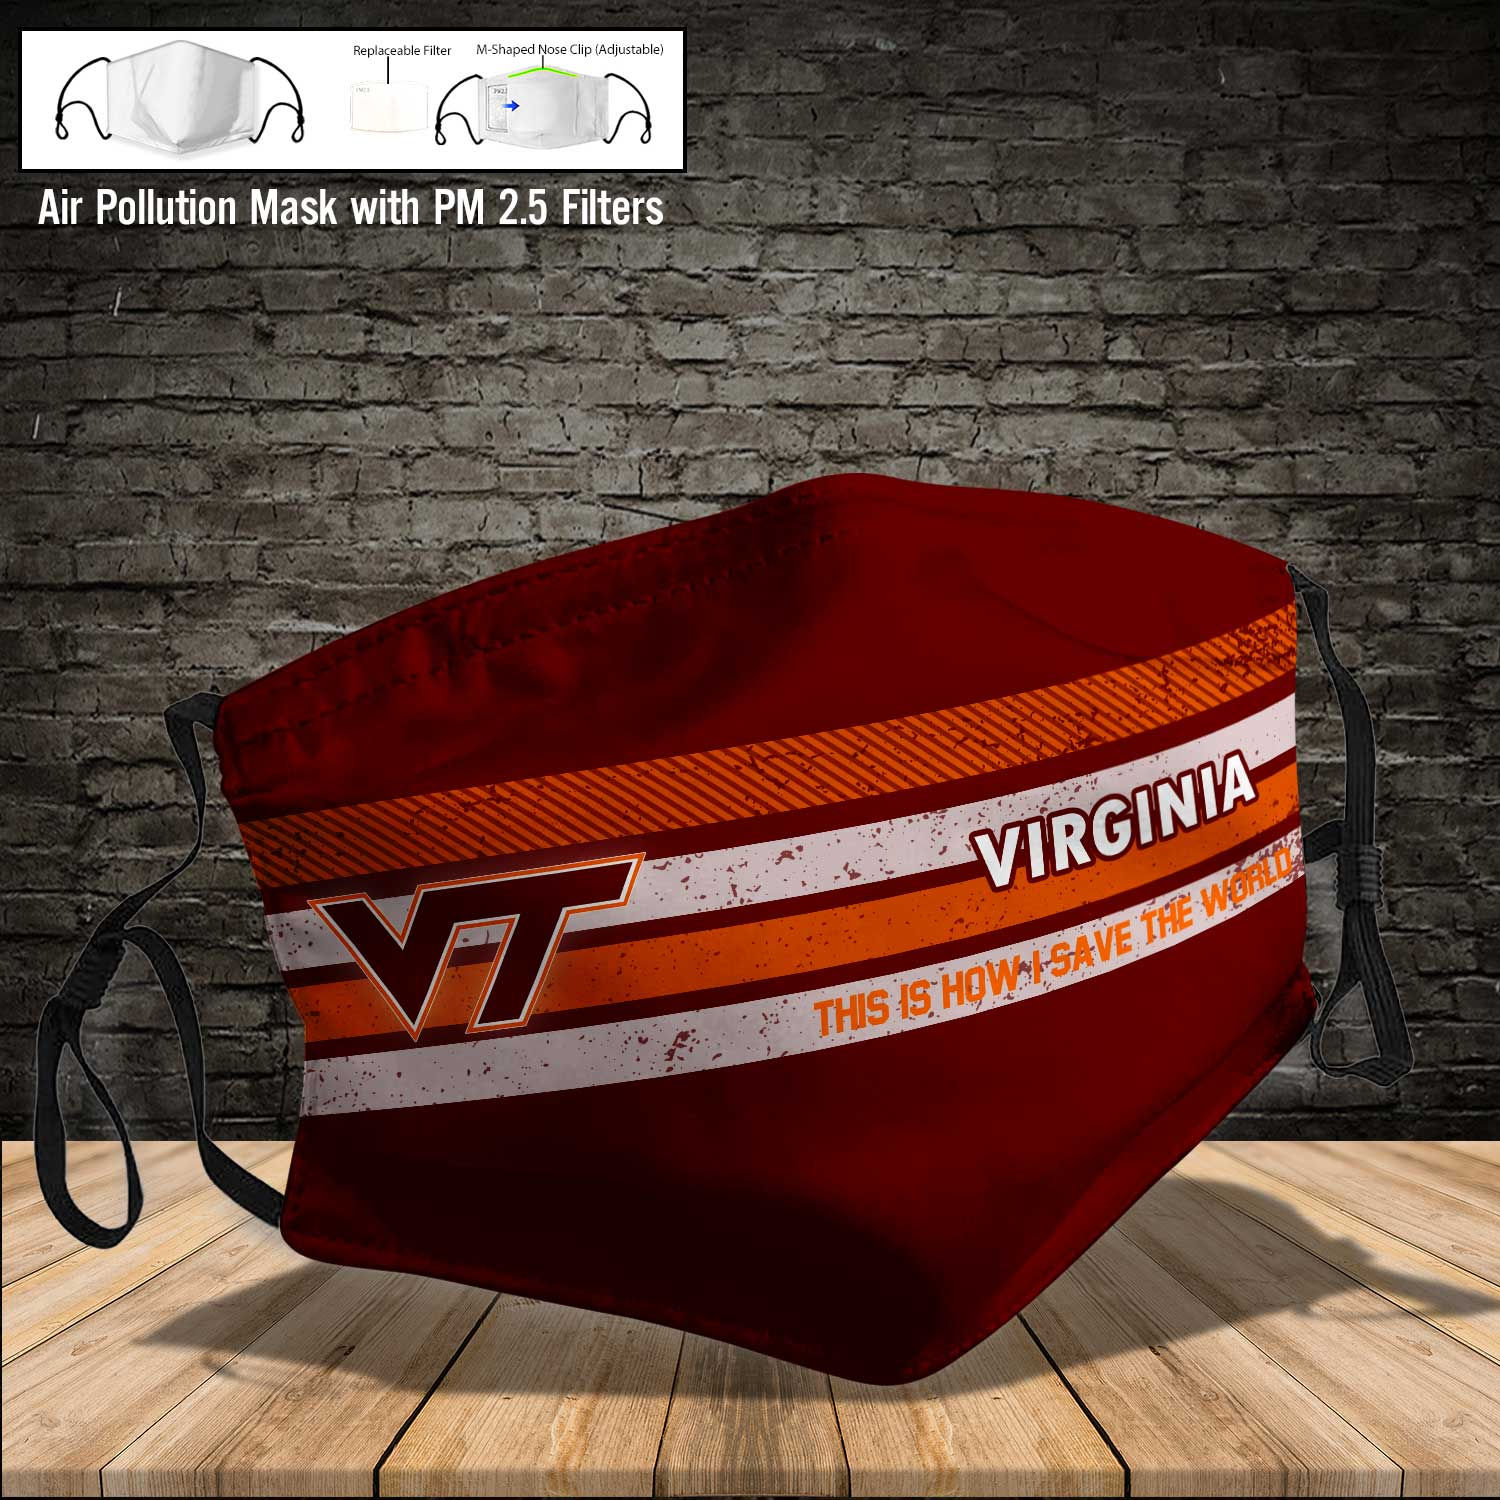 Virginia tech hokies this is how i save the world face mask 4